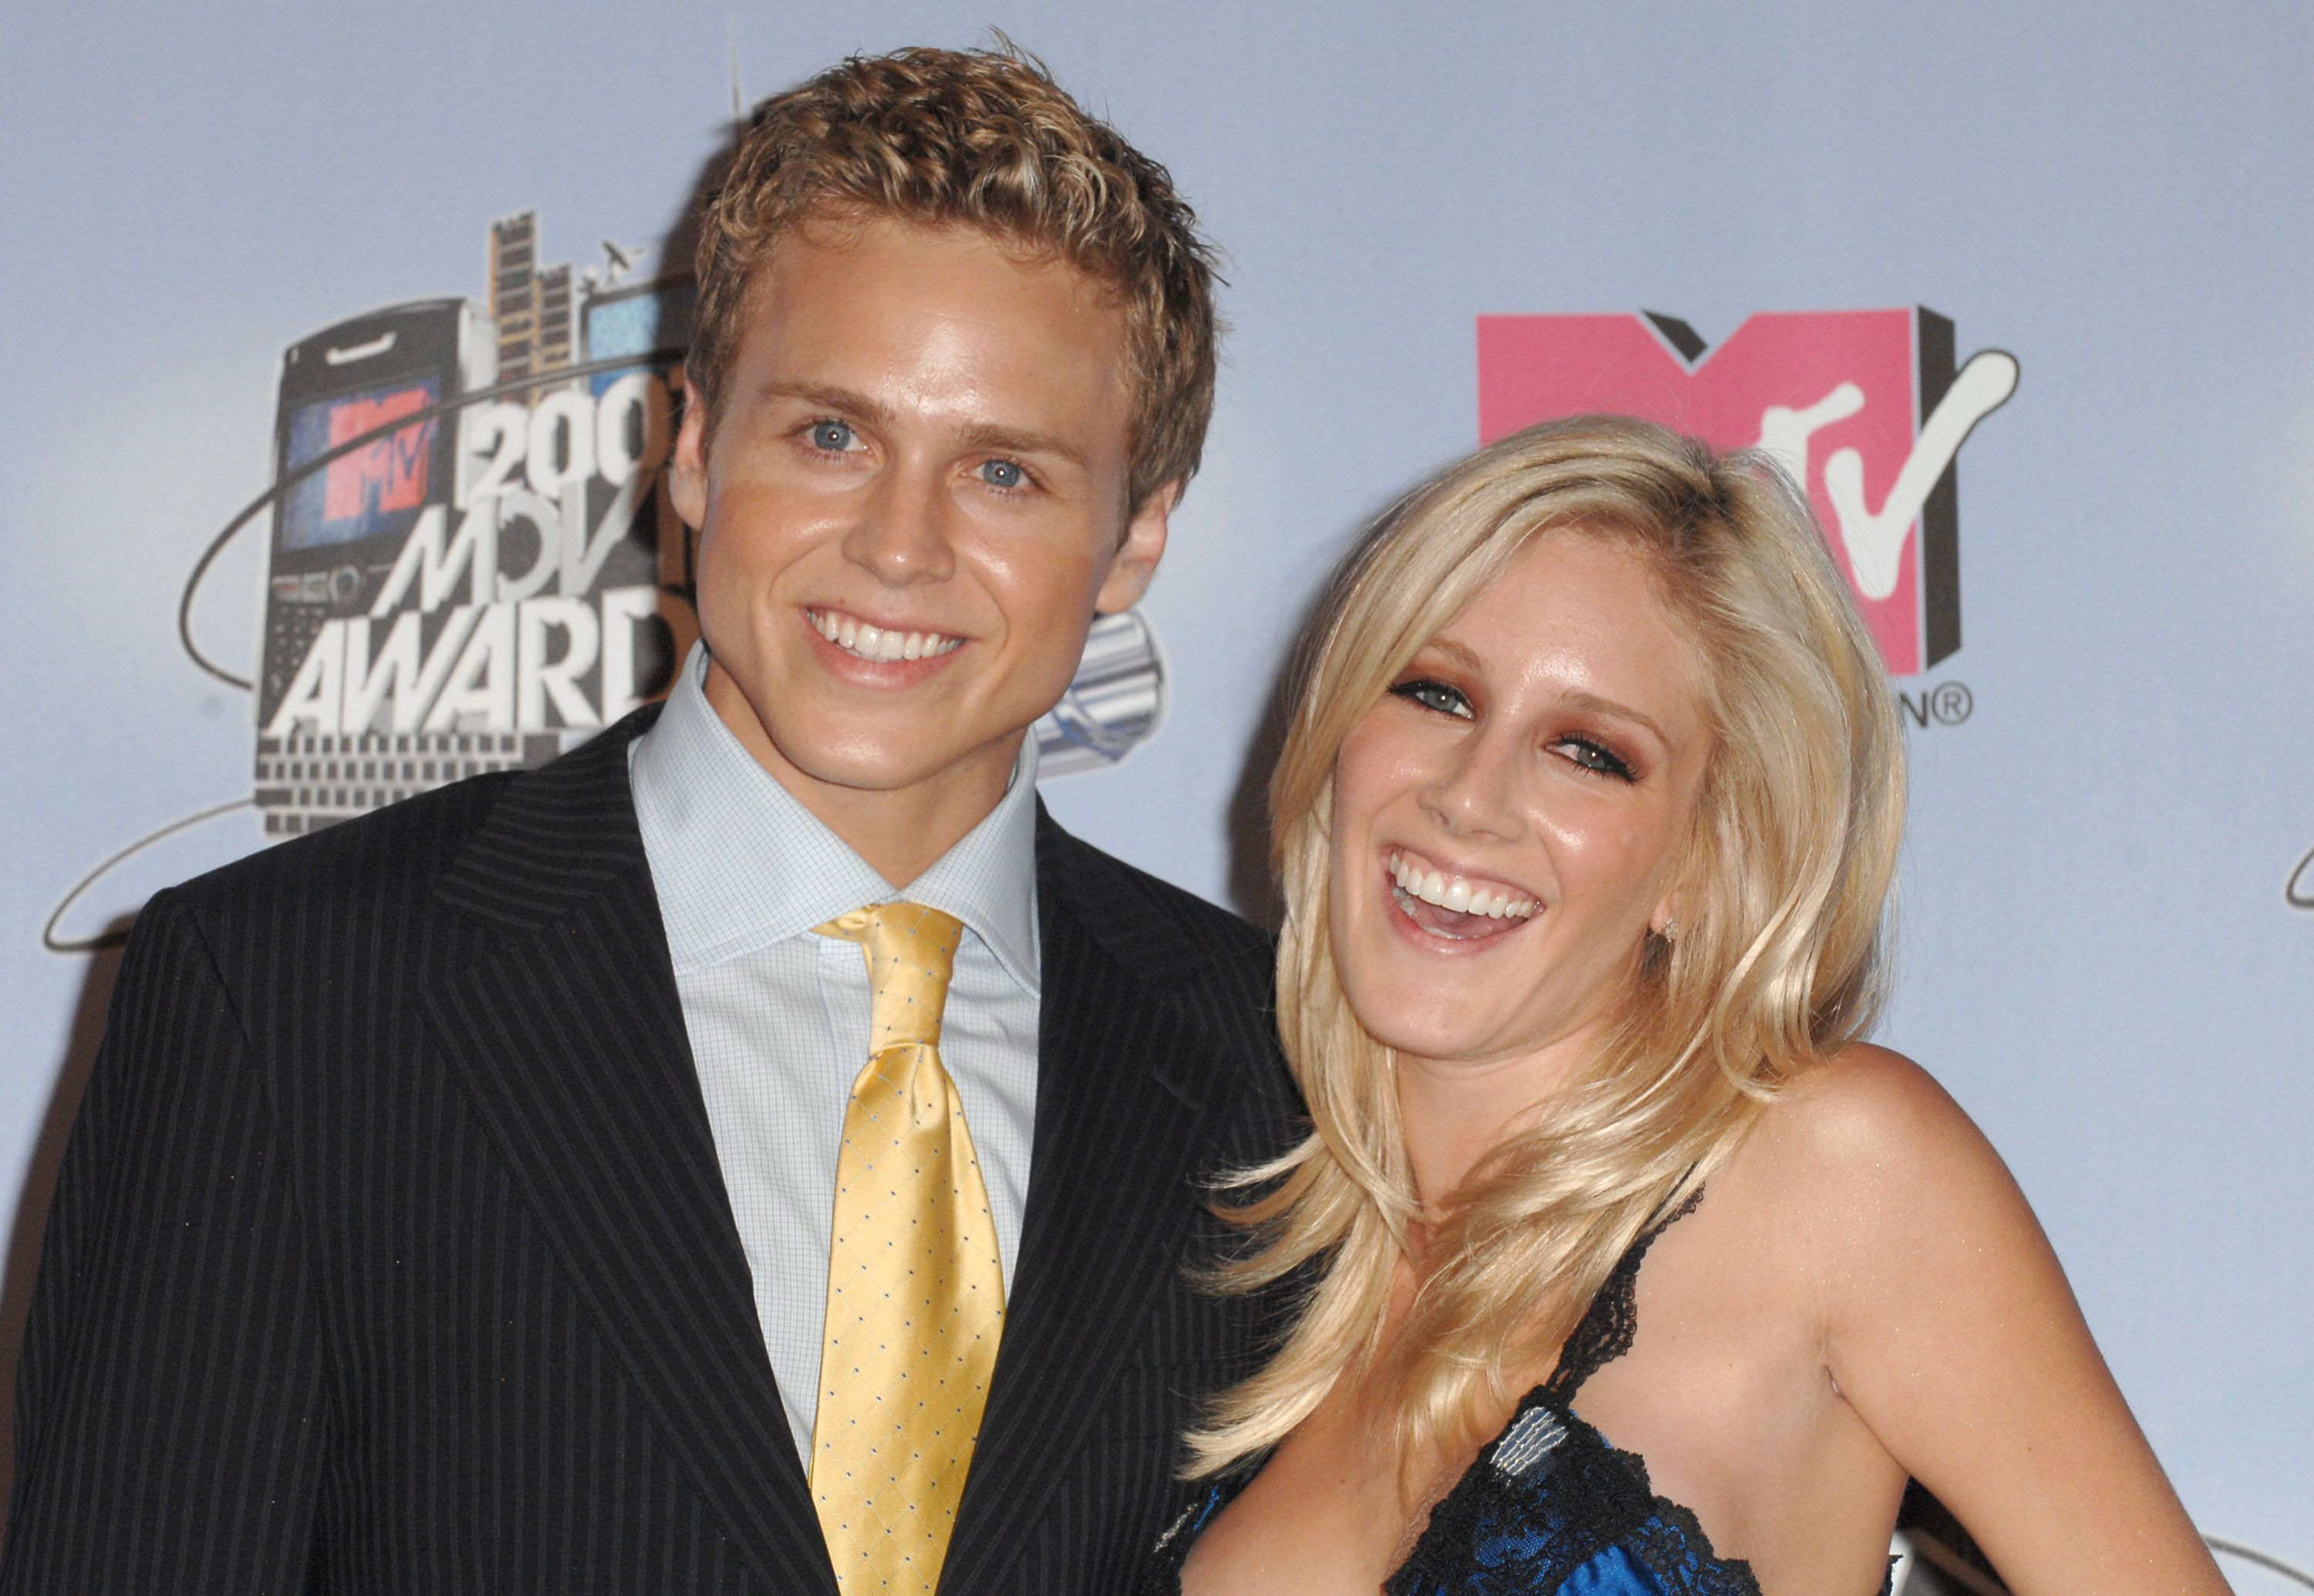 Spencer Pratt and Heidi Montag (Photo by Steve Granitz/WireImage)